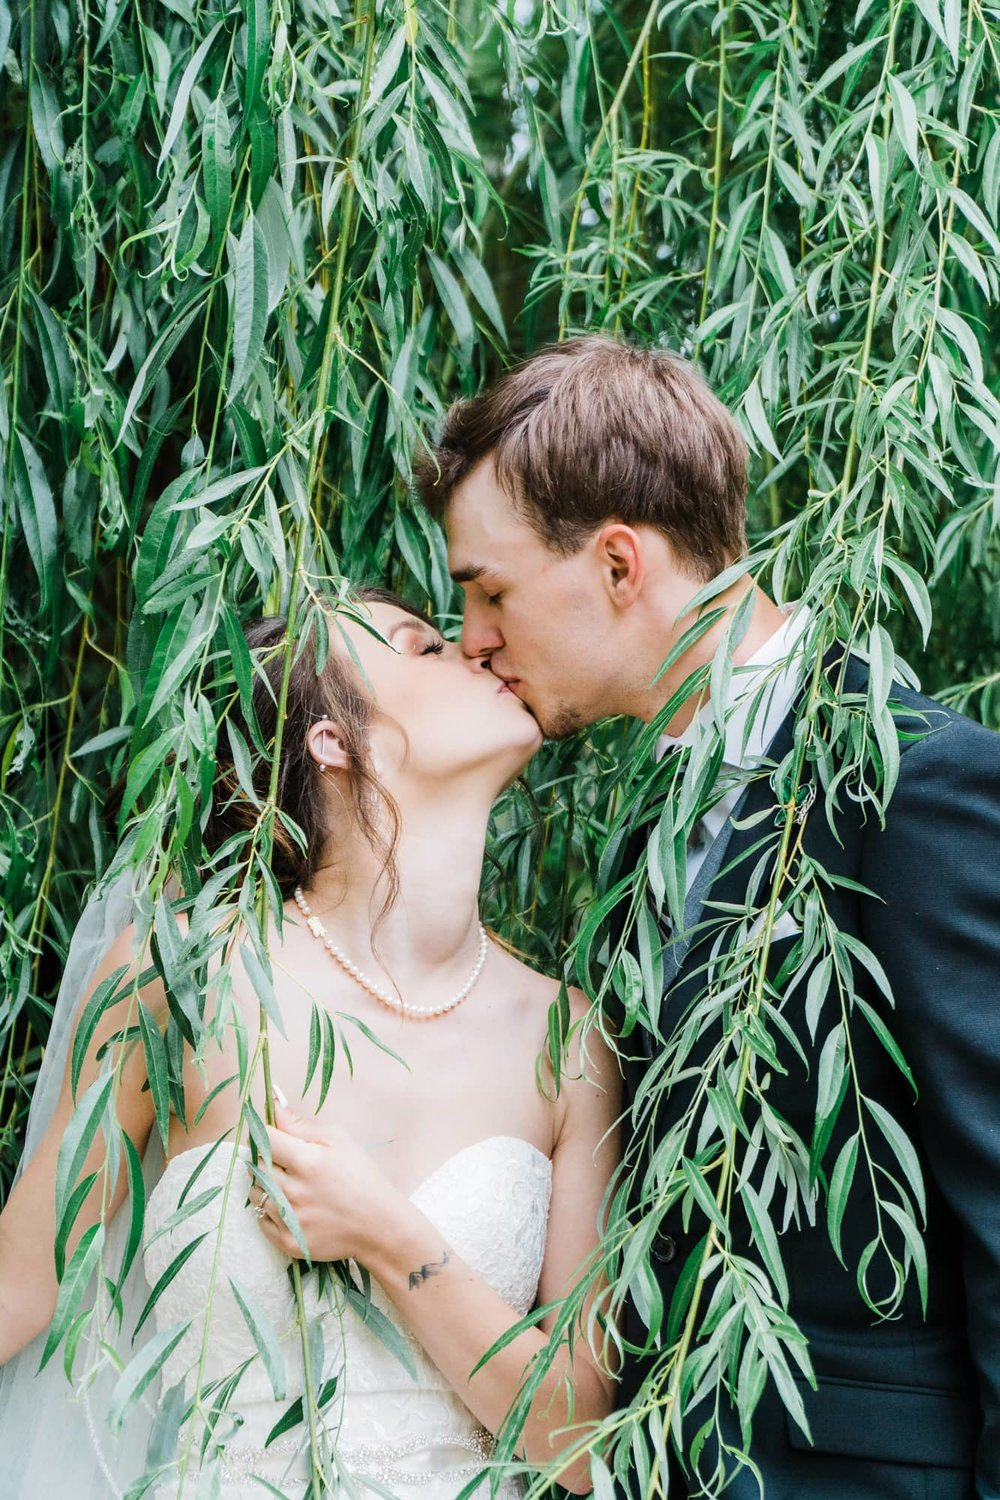 Bride and groom kissing among willow tree branches.